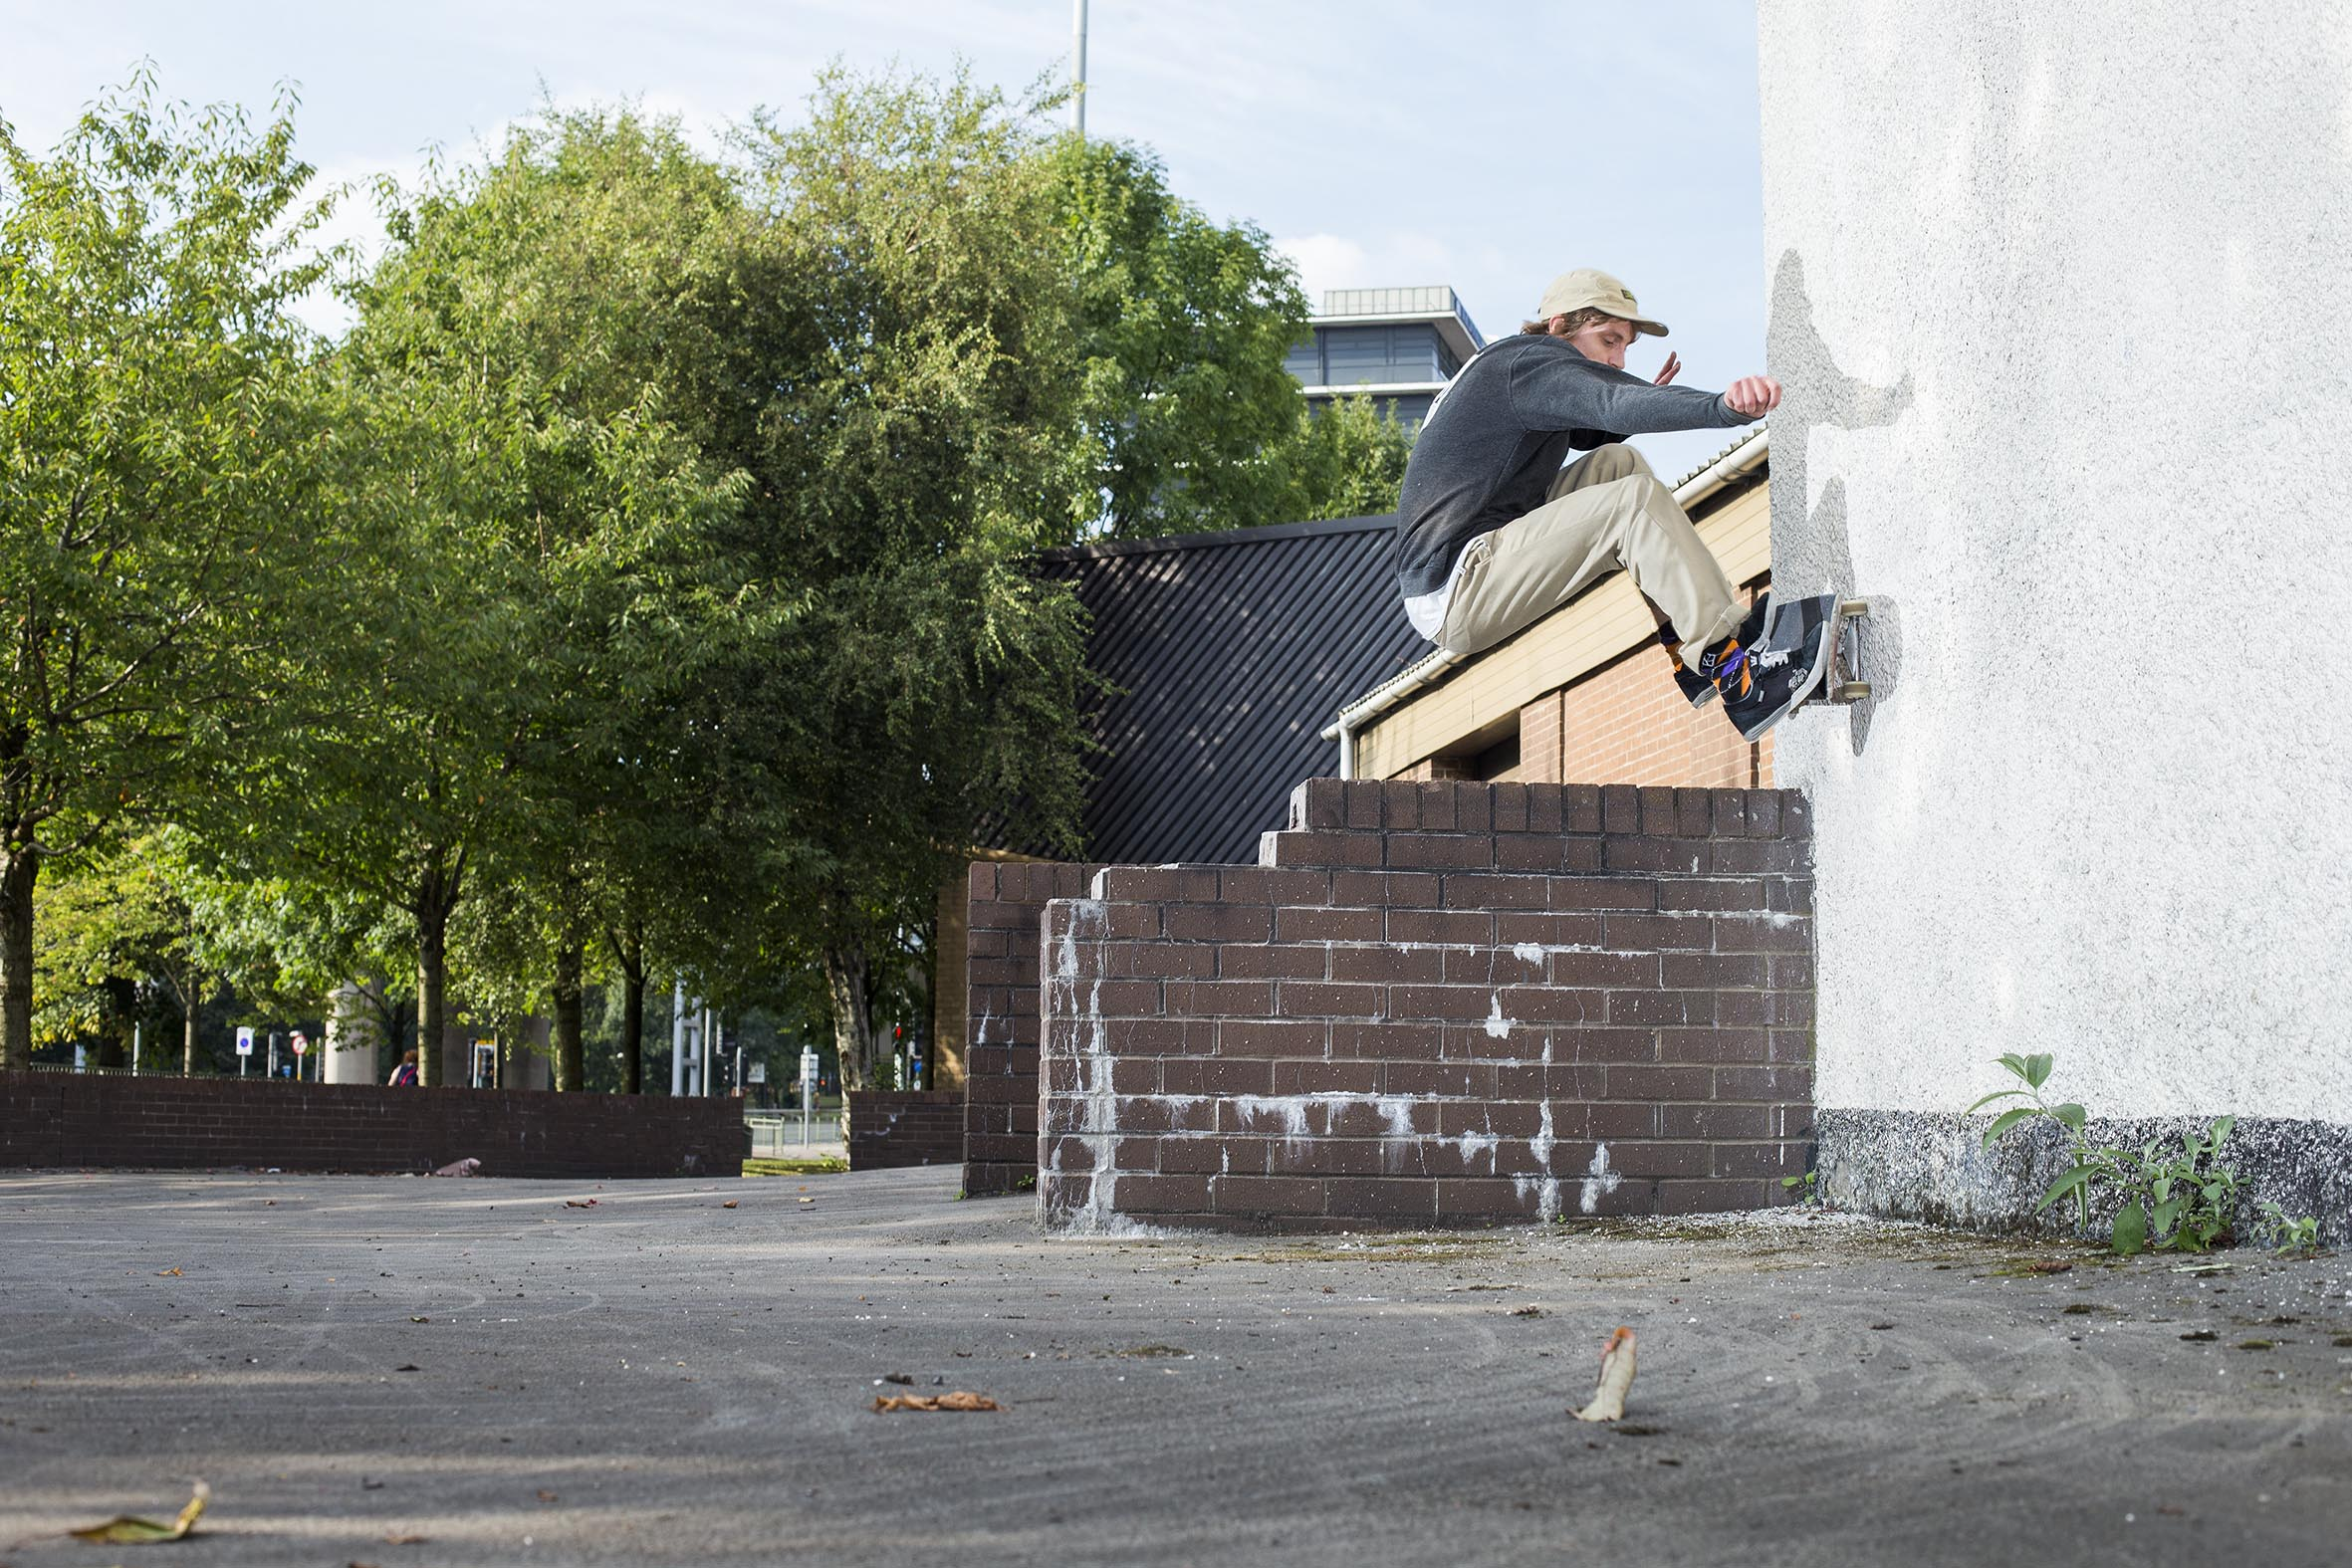 Lewis Threadgold - ollie over to wallride